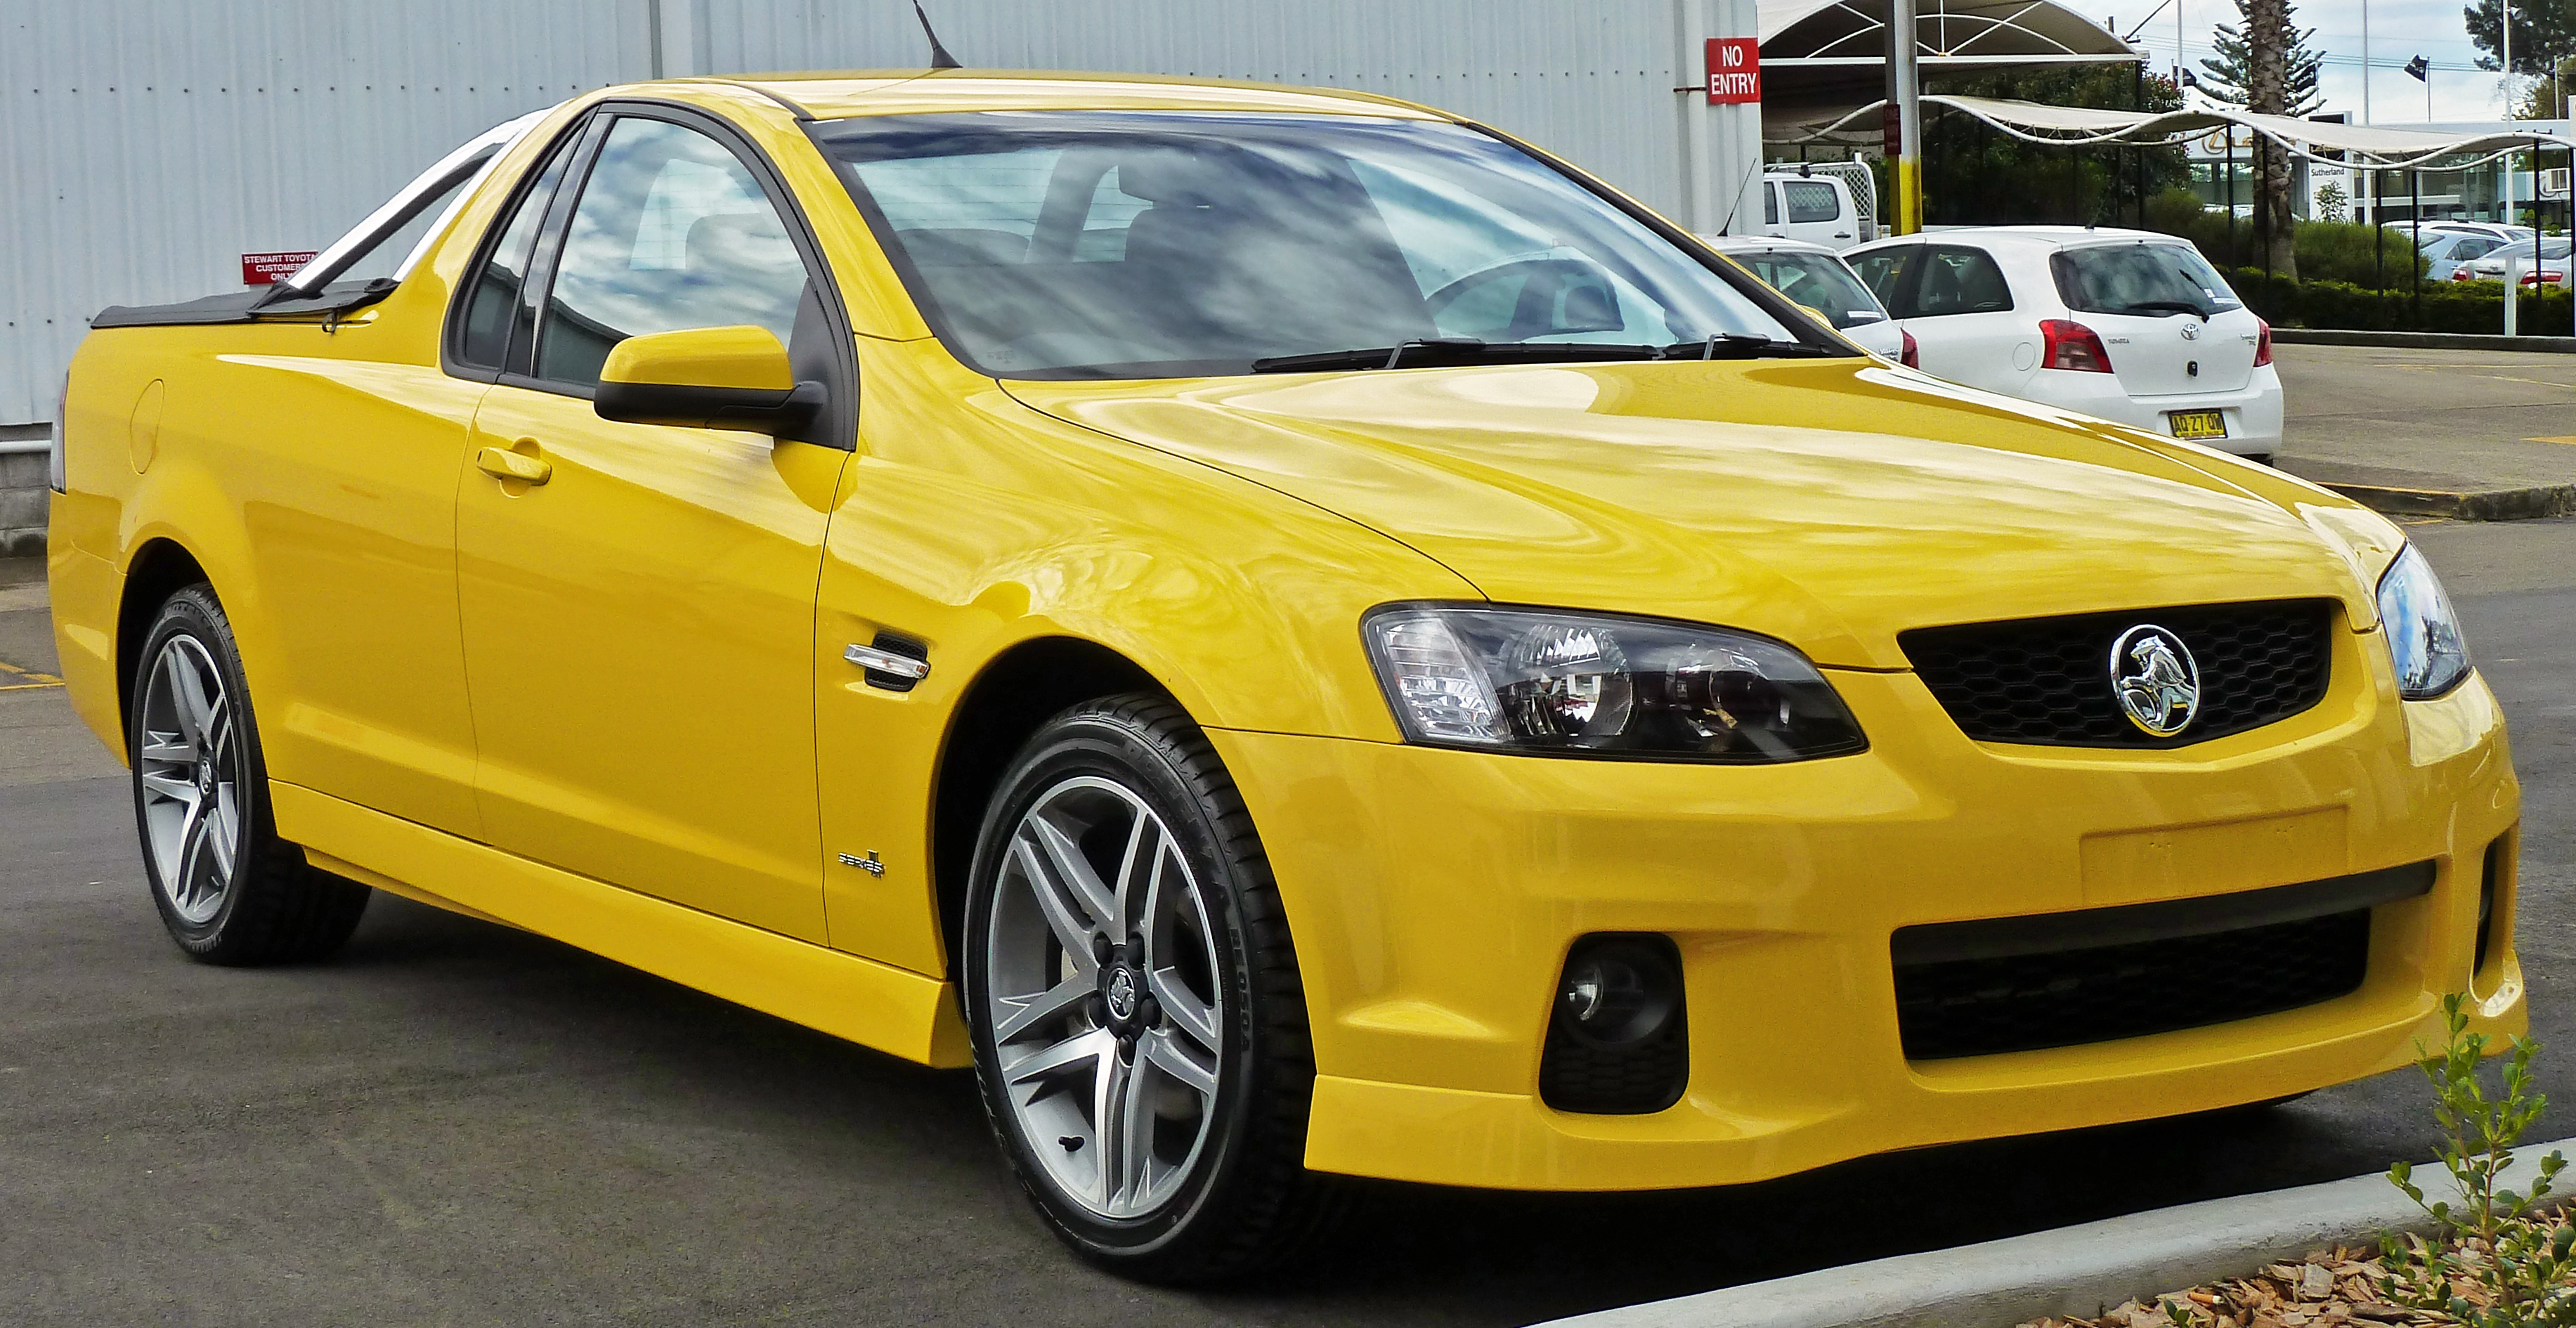 2007 holden ve ute sv6 image collections hd cars wallpaper 2011 holden ve ii commodore omega image collections hd cars 2011 holden ve ii commodore sportwagon vanachro Image collections